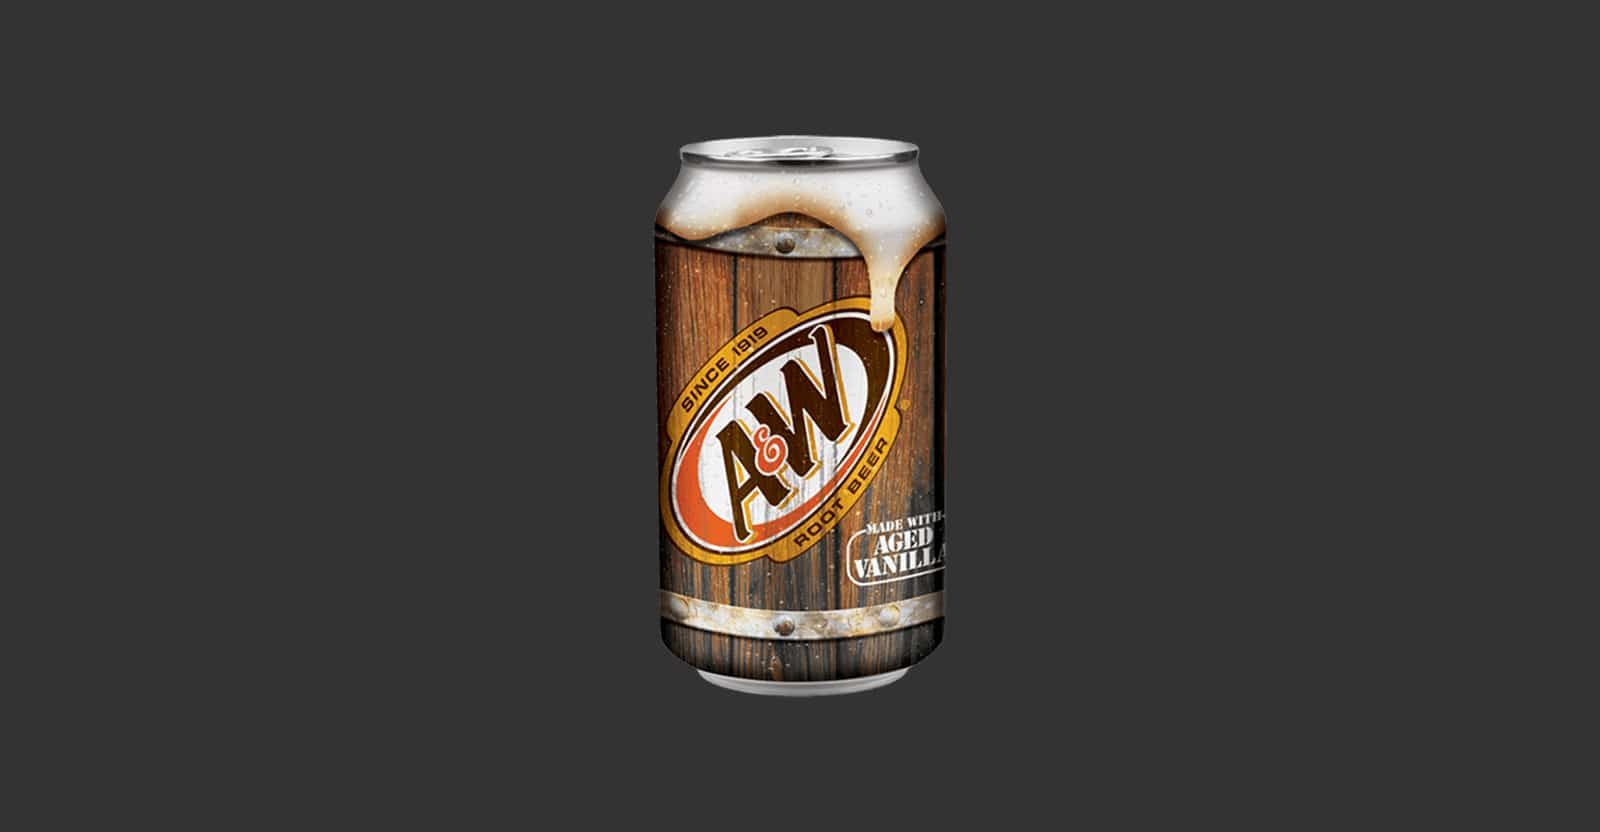 Is A&W Root Beer Gluten-Free?